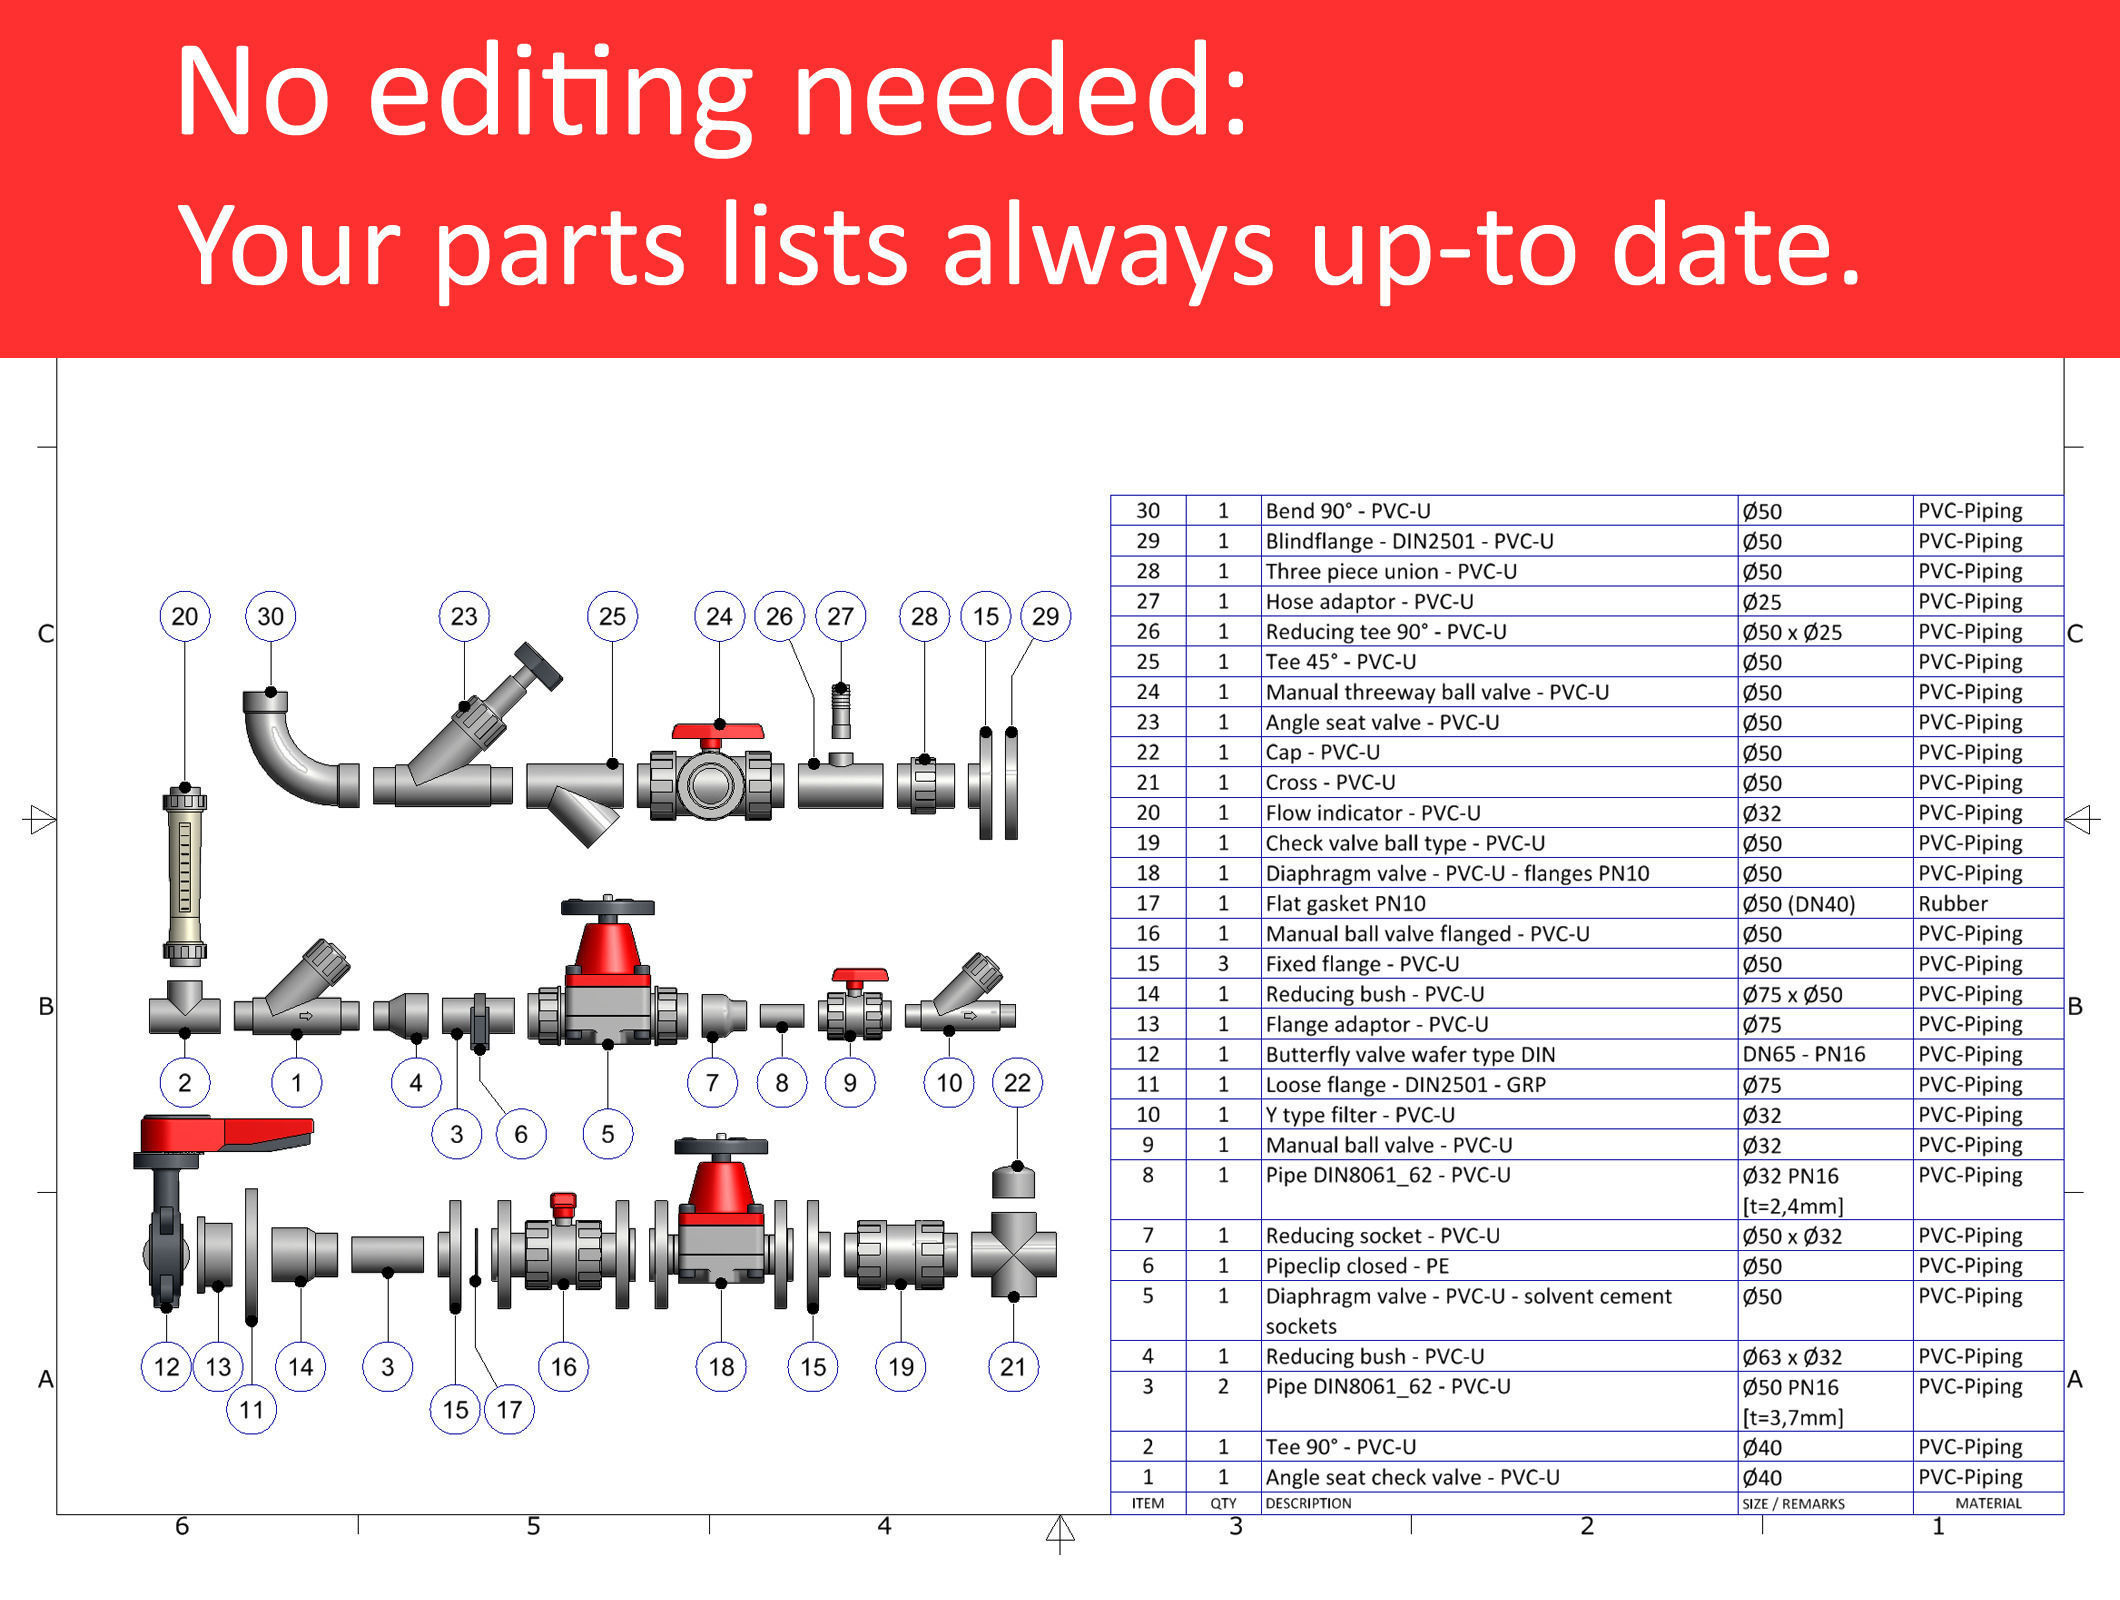 Autodesk inventor cad library piping no 3 3d model ipt pdf autodesk inventor cad library piping no 3 3d model ipt pdf 9 ccuart Images